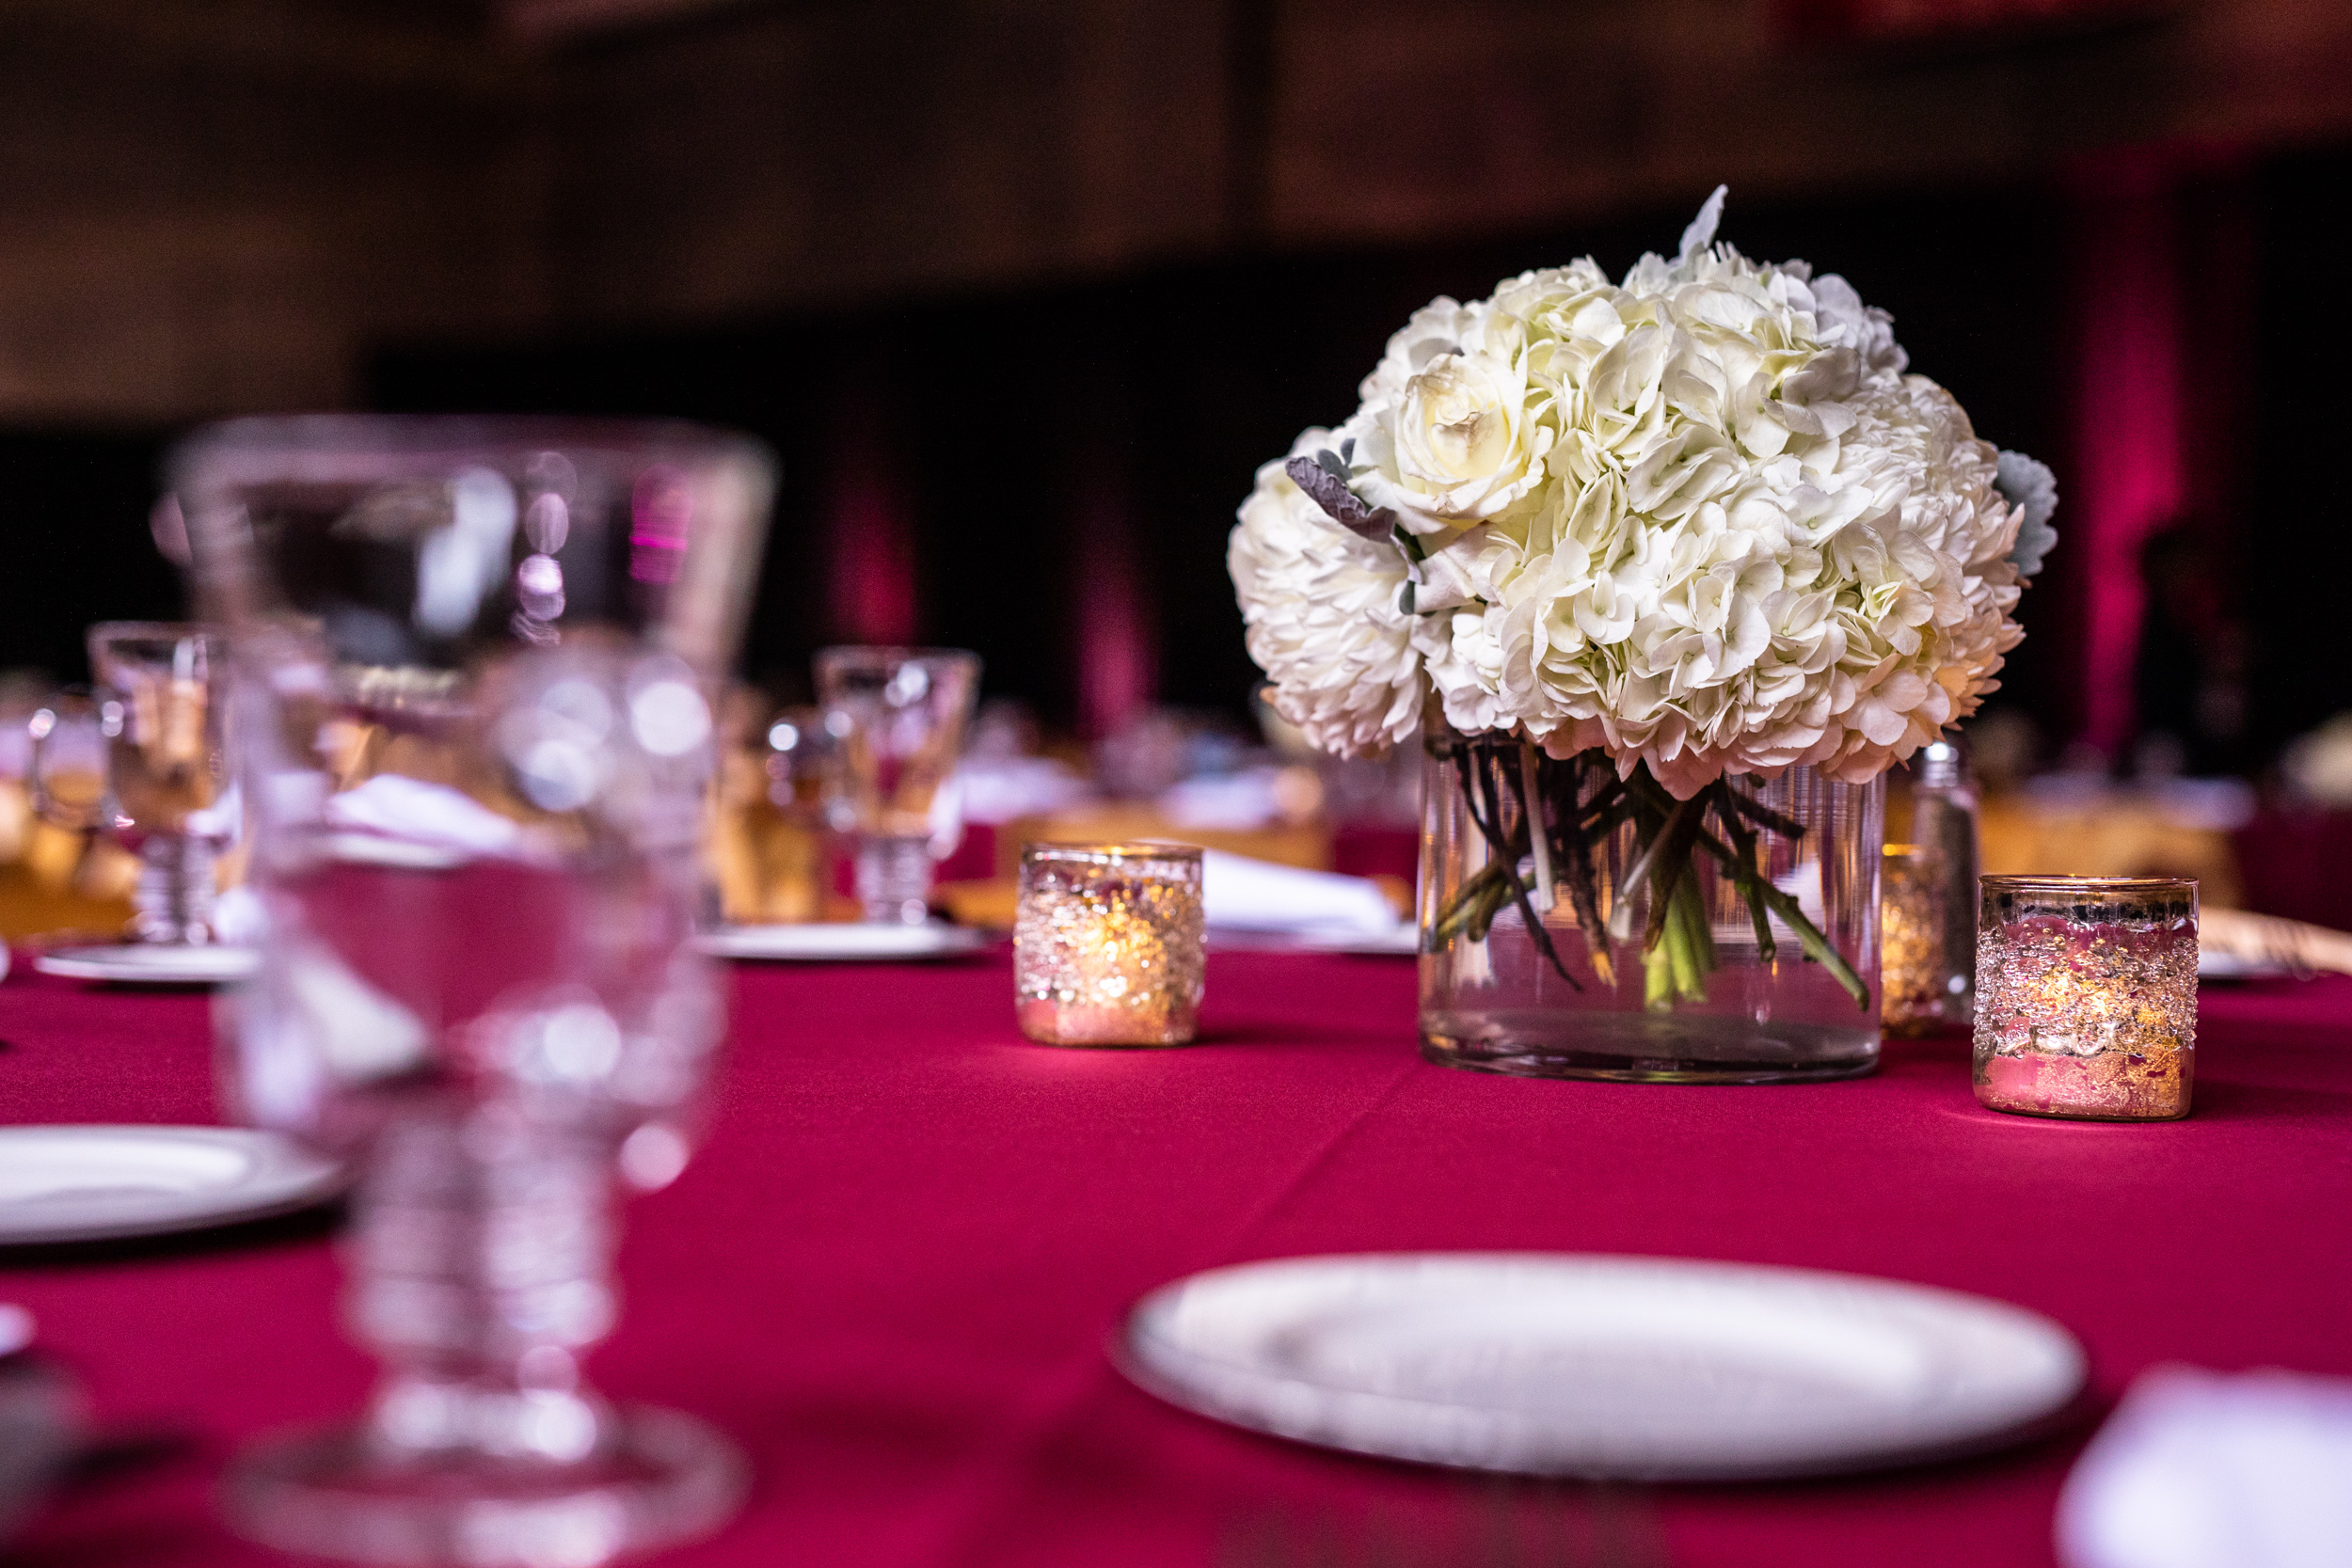 Corporate_Production_Phillips_Exeter_Academy_Pizzuti_Awards_Dinner_floral_arrangement